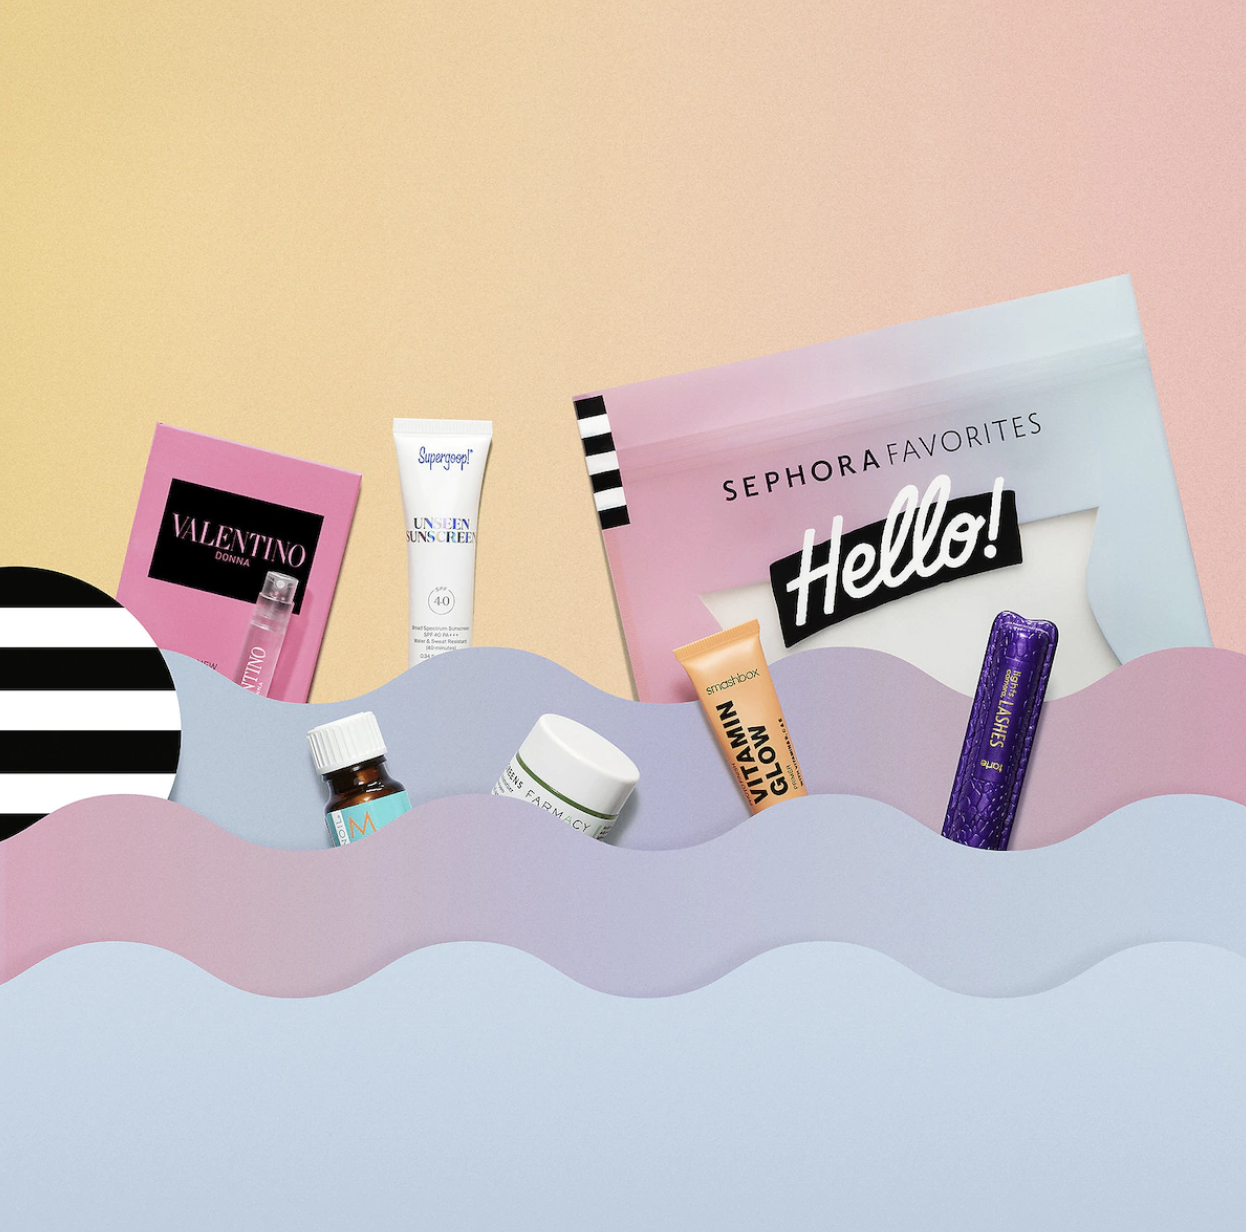 Sephora gift bag with six sample-size products